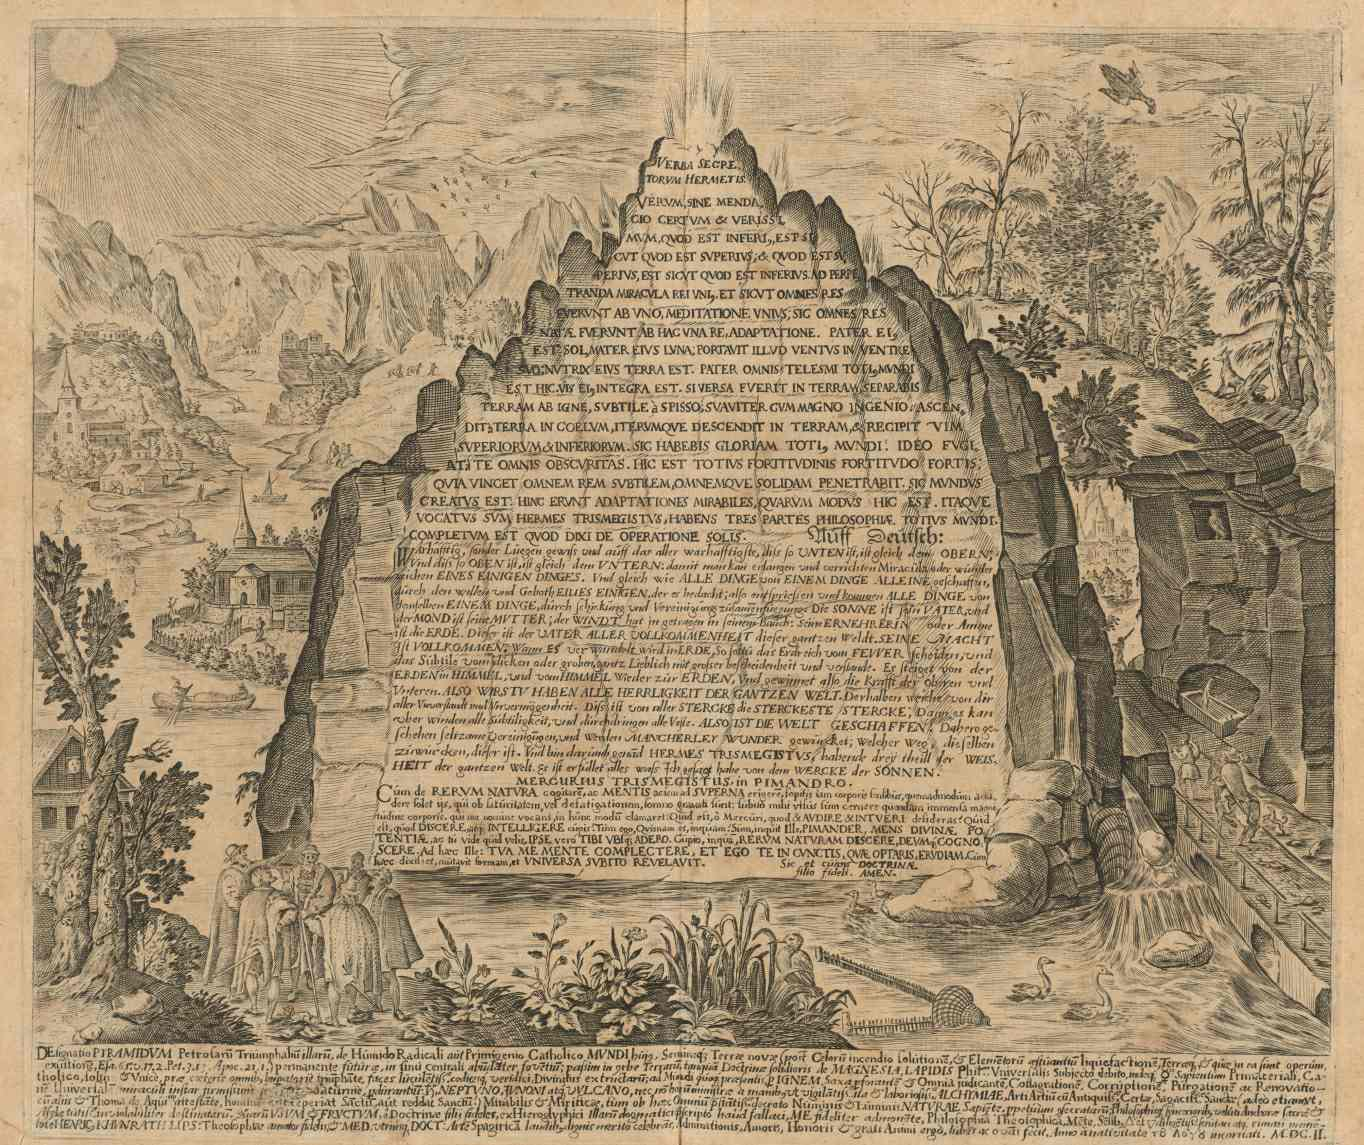 An imaginative 17th-century depiction of the Emerald Tablet from the work of Heinrich Khunrath, 1606